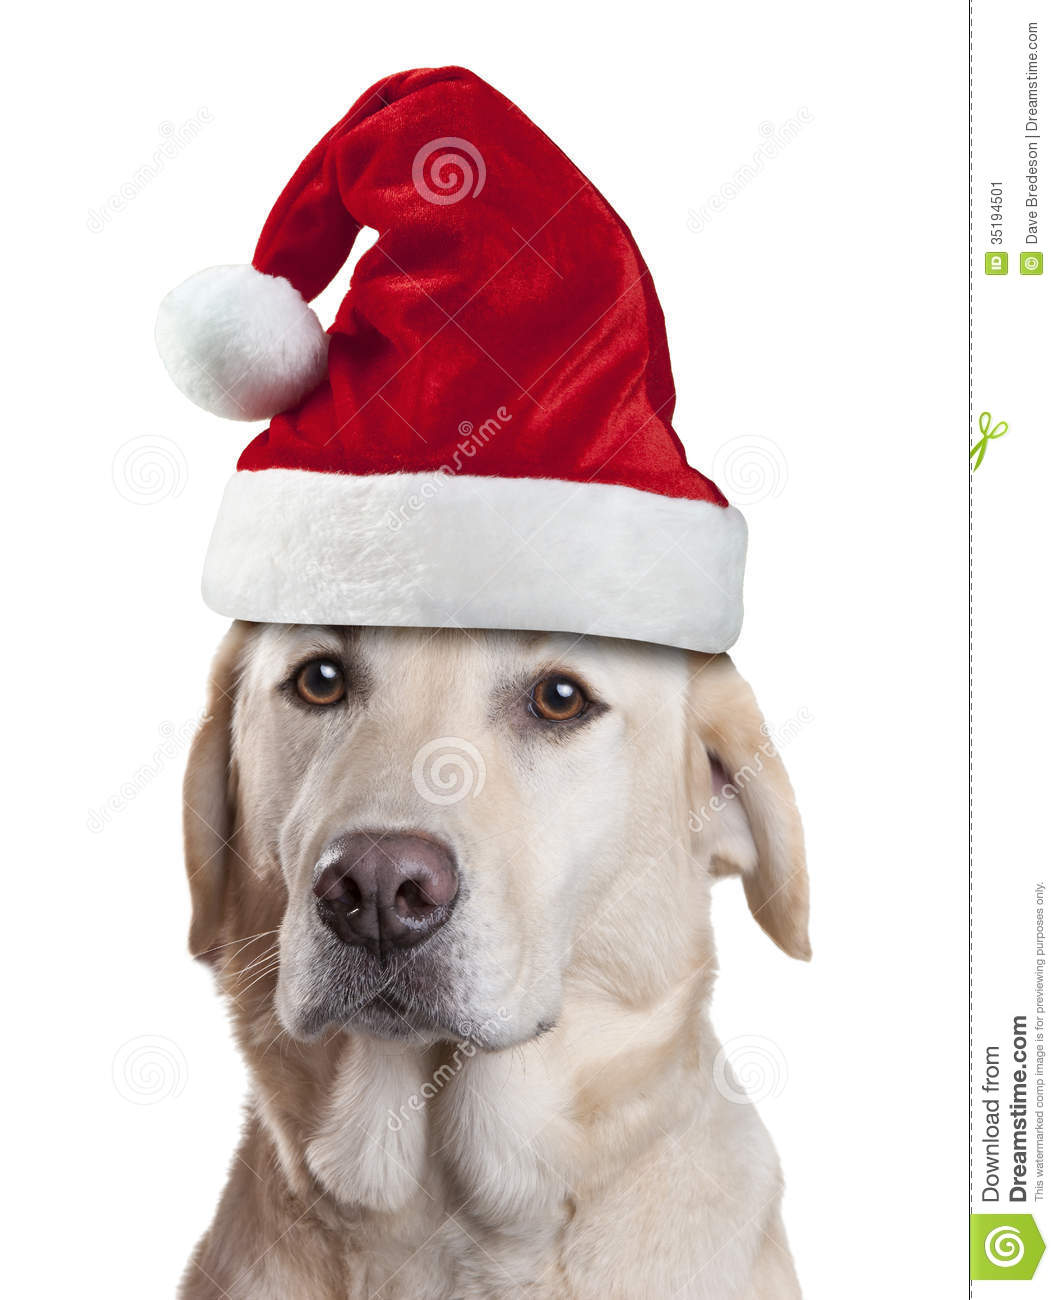 Christmas Hats For Dogs.Christmas Santa Hat Dog Stock Image Image Of Retriever